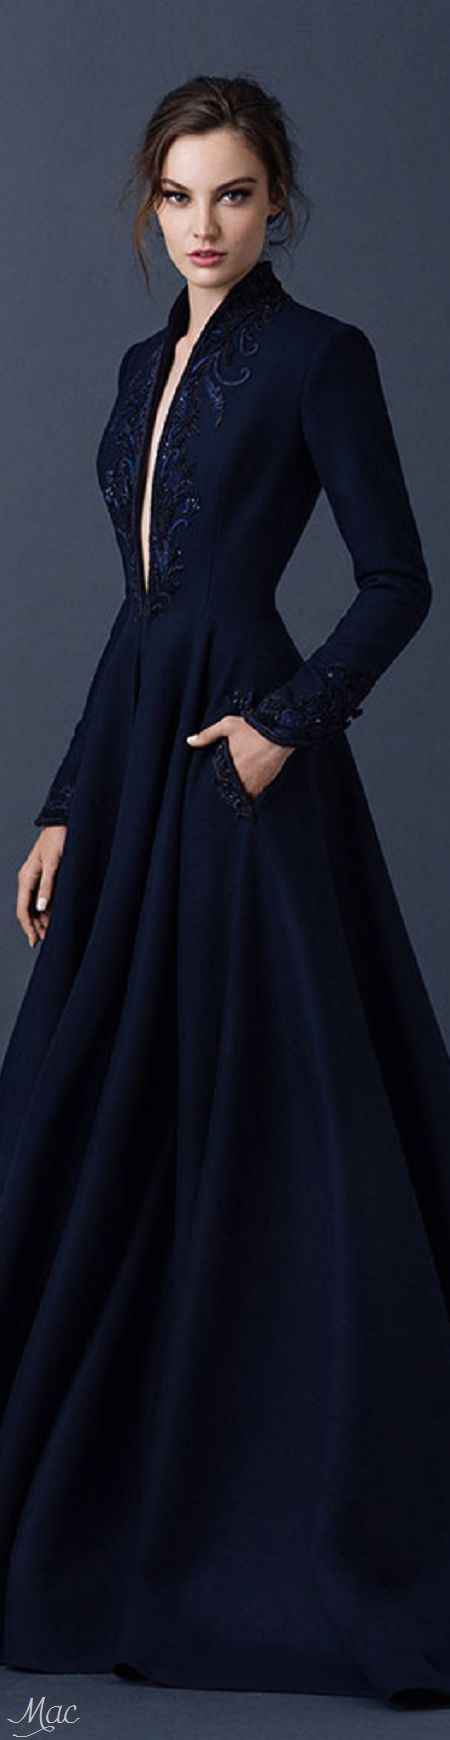 Paolo Sebastian ~ Couture Elegant Navy Long Sleeve Embroidered Gown, Fall 2015